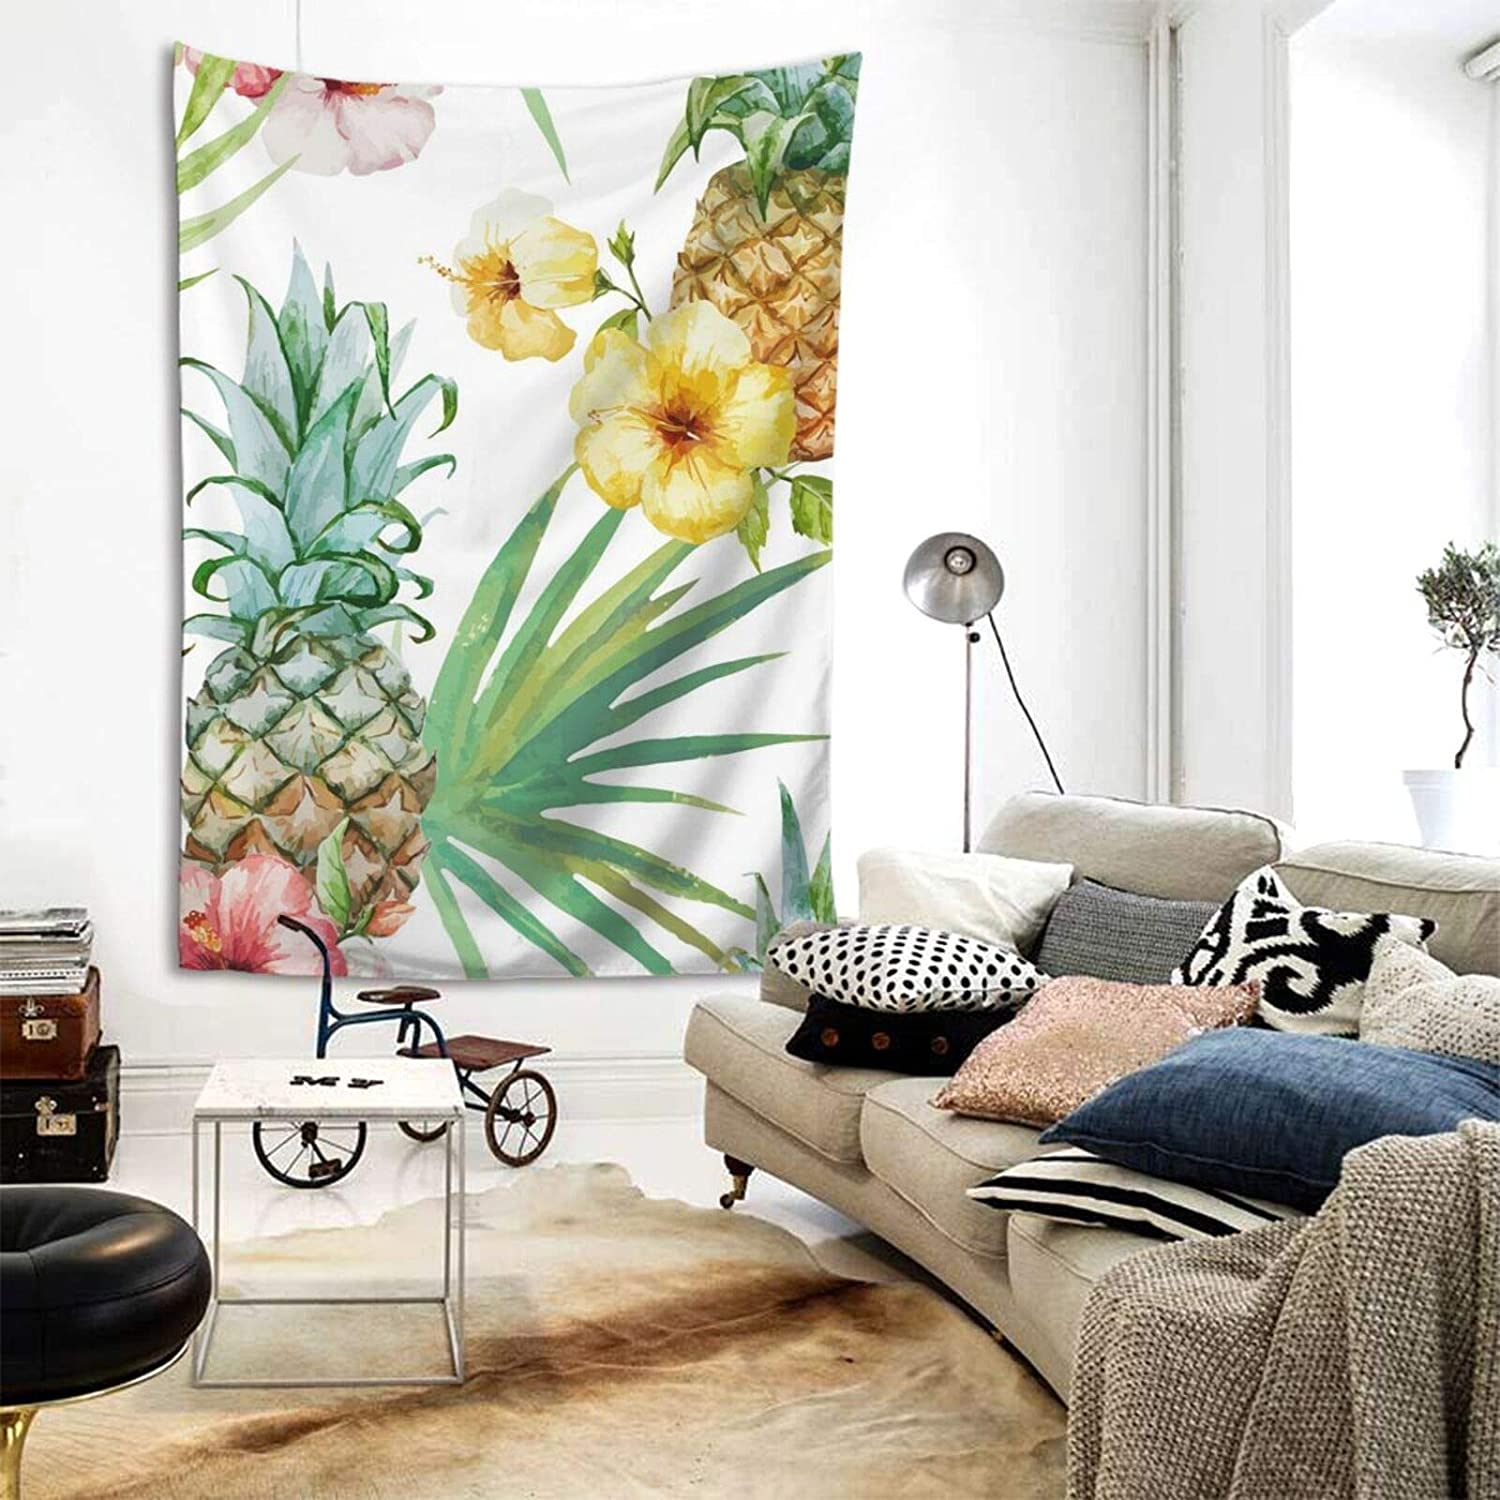 Hangyin Pineapple and Flowers Tapestry Wall Tapestry Home Decor for Bedroom Living Room College Dorm 80x60 Inches